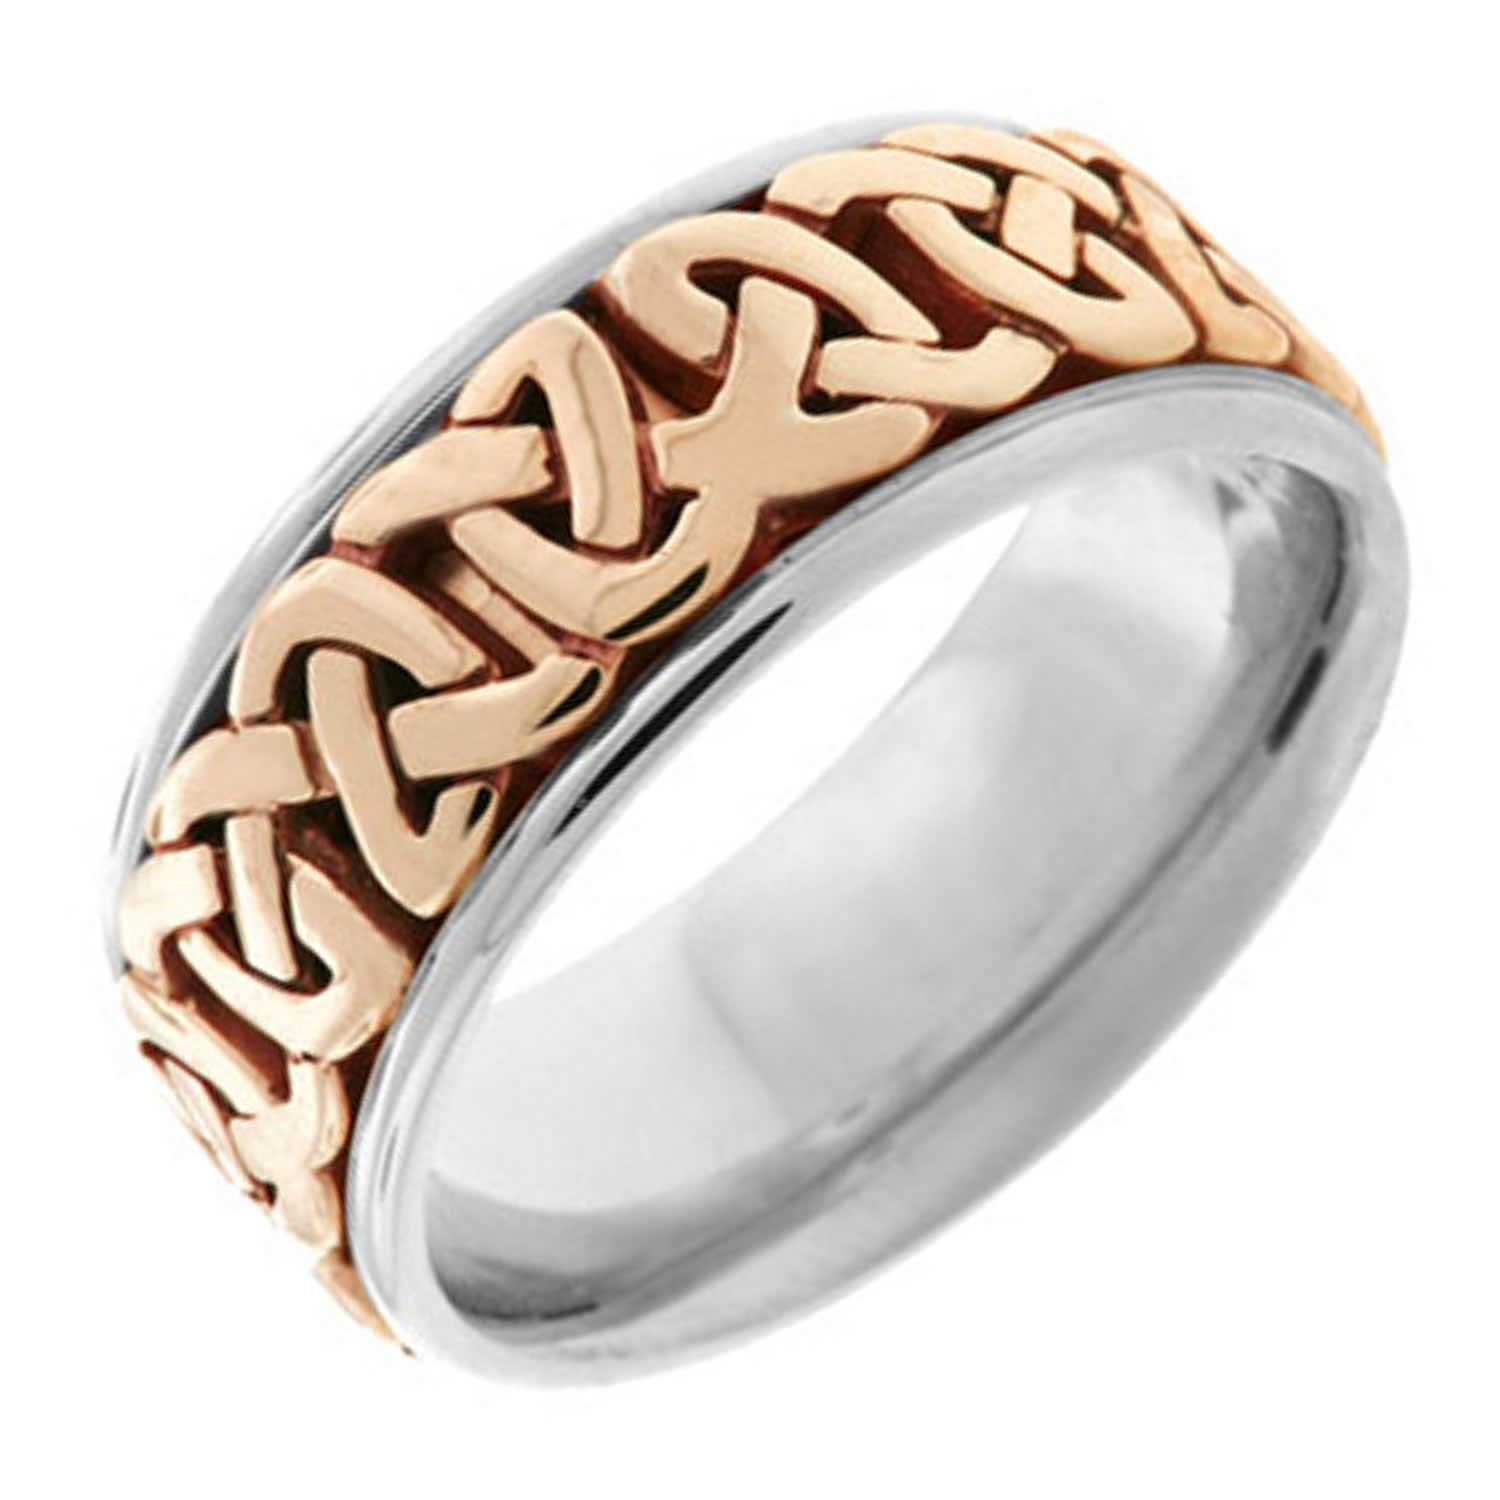 14K Two Tone Gold Celtic Love Knot Men's Comfort Fit Wedding Band (8.5mm) Size-13.5c1